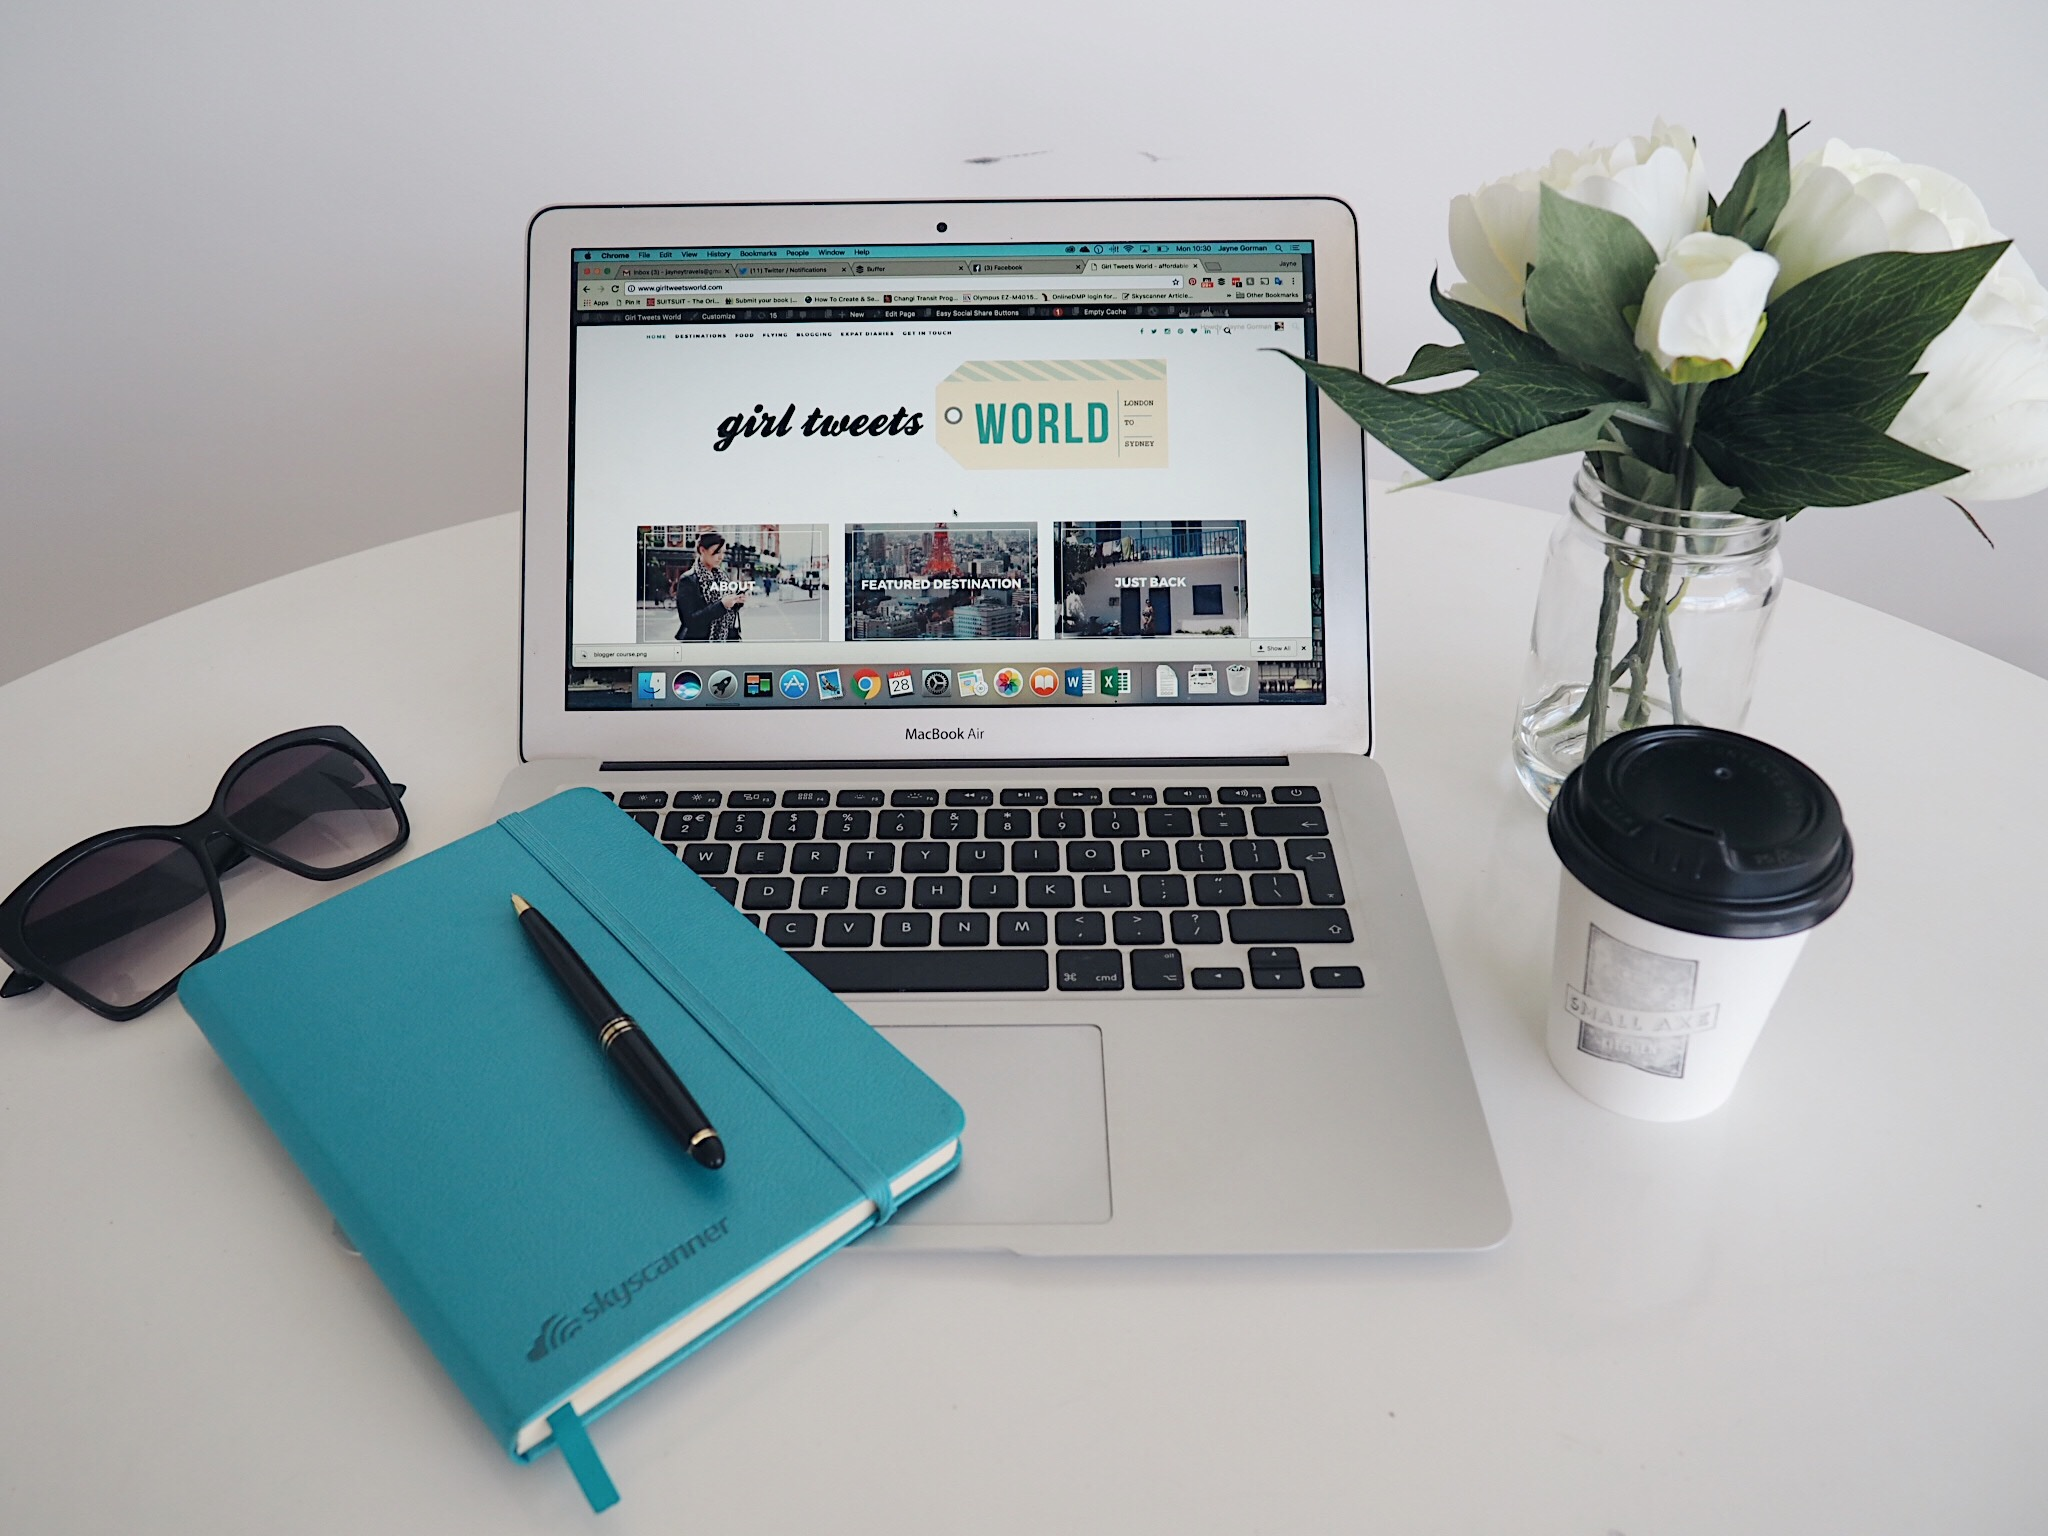 Top 5 Resources For Freelance Bloggers | Blog Tips | Girl Tweets World